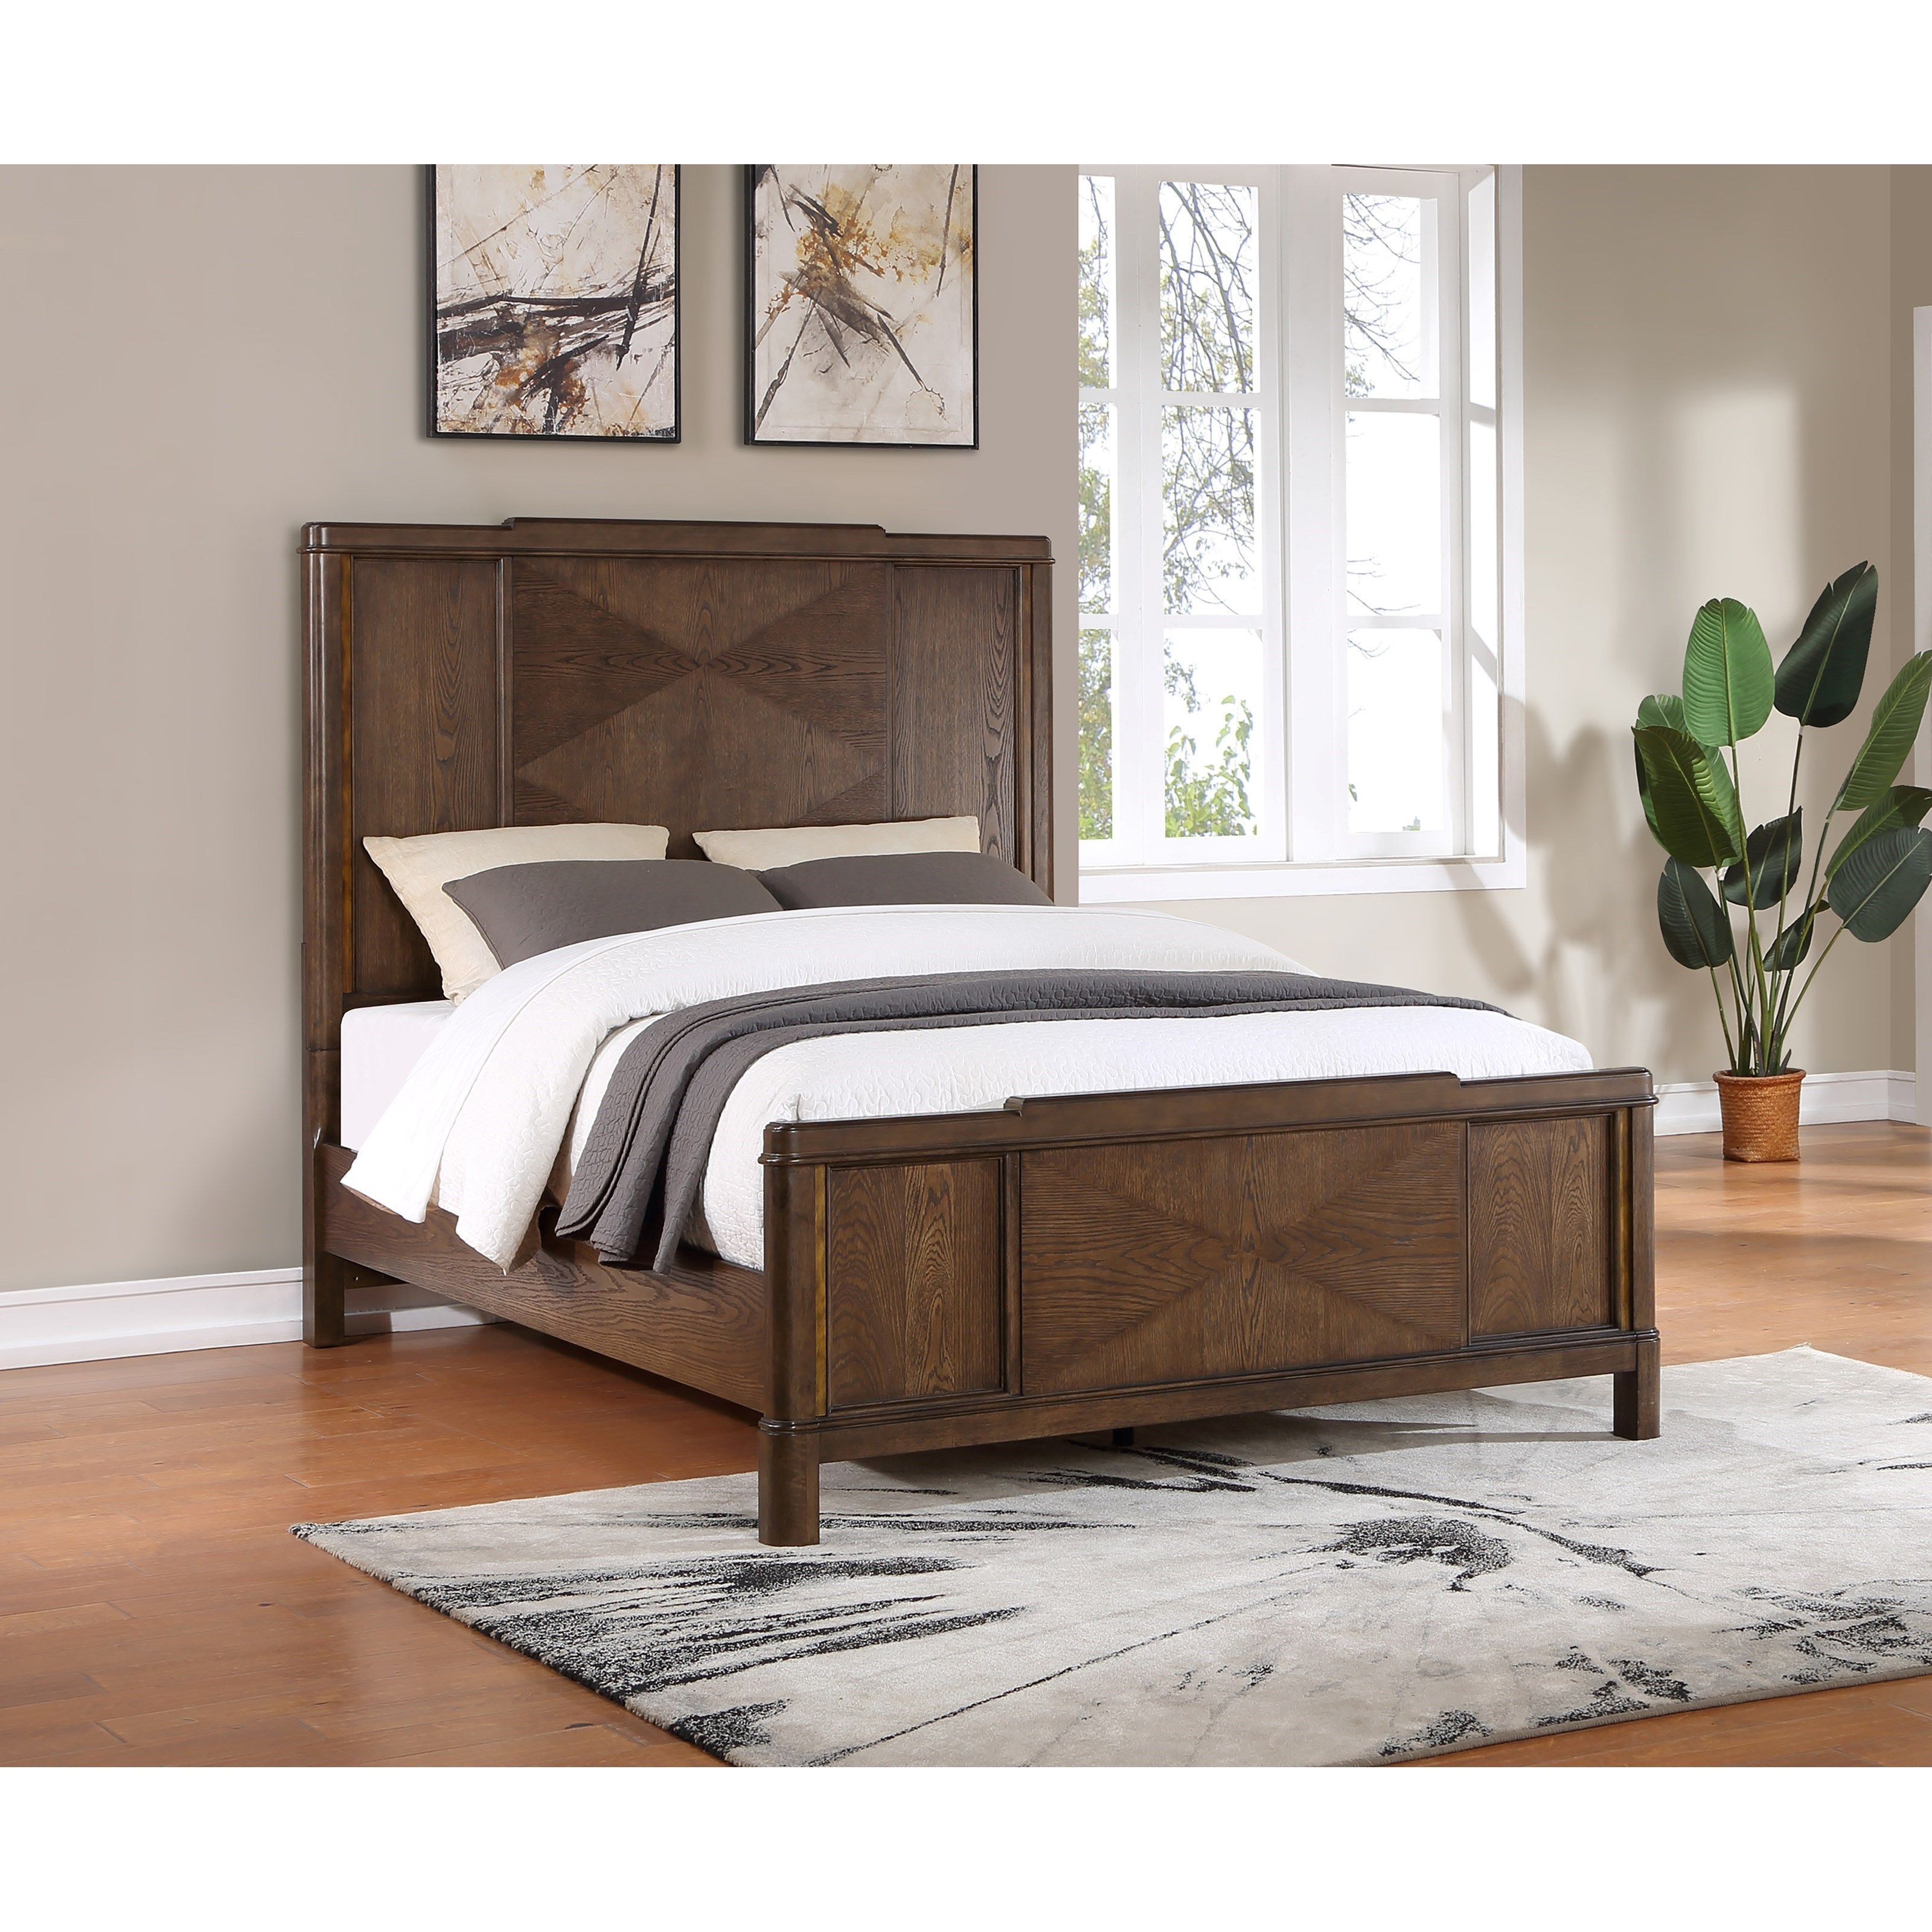 Milan Queen Panel Bed by Steve Silver at Standard Furniture